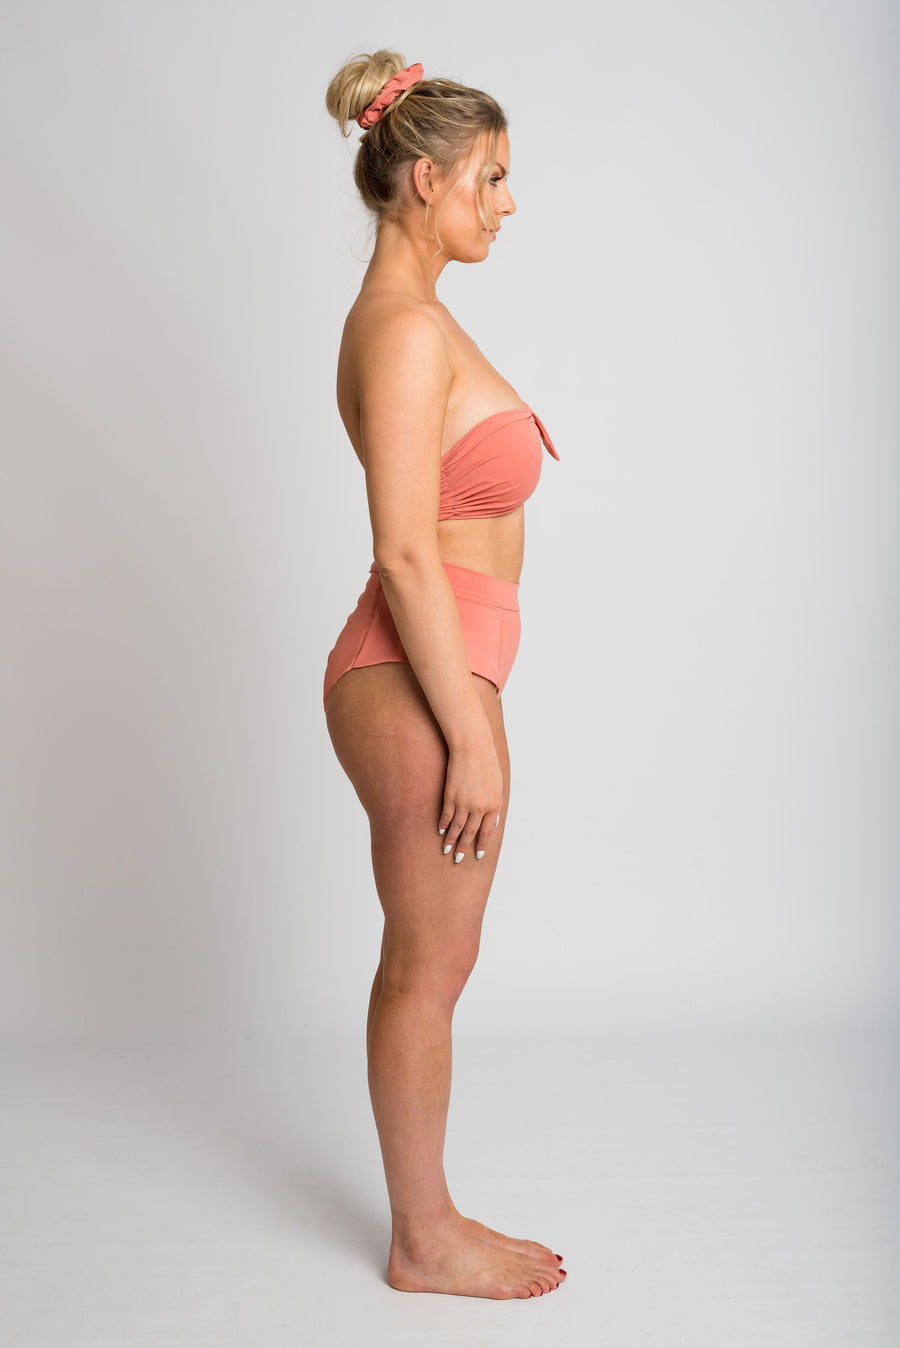 Ethical and sustainable swimwear for women xxs to plus size, recycled ECONYL pink one shoulder bikini ethically made in Australia.